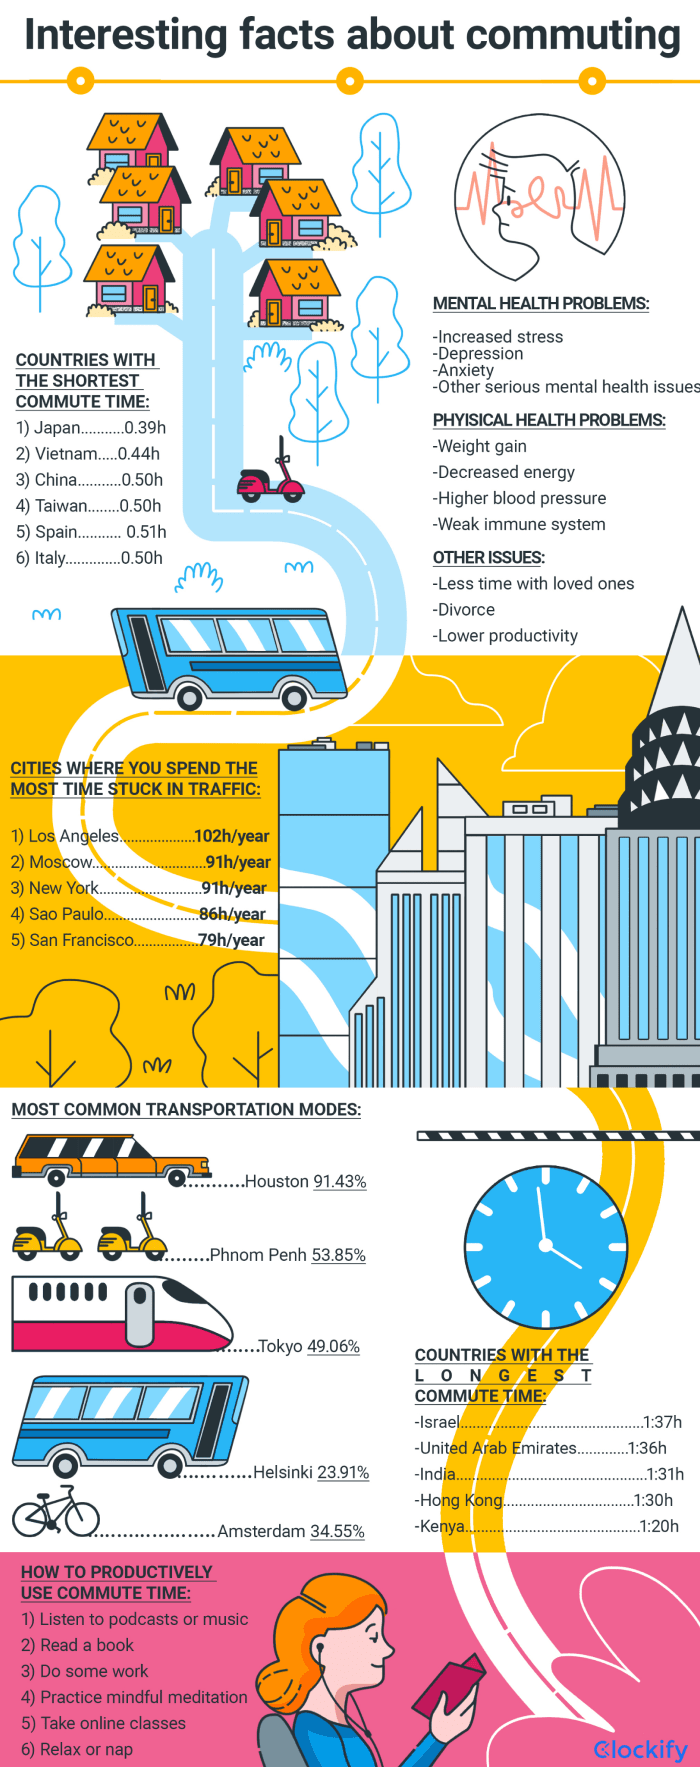 Commuting Facts Infographic